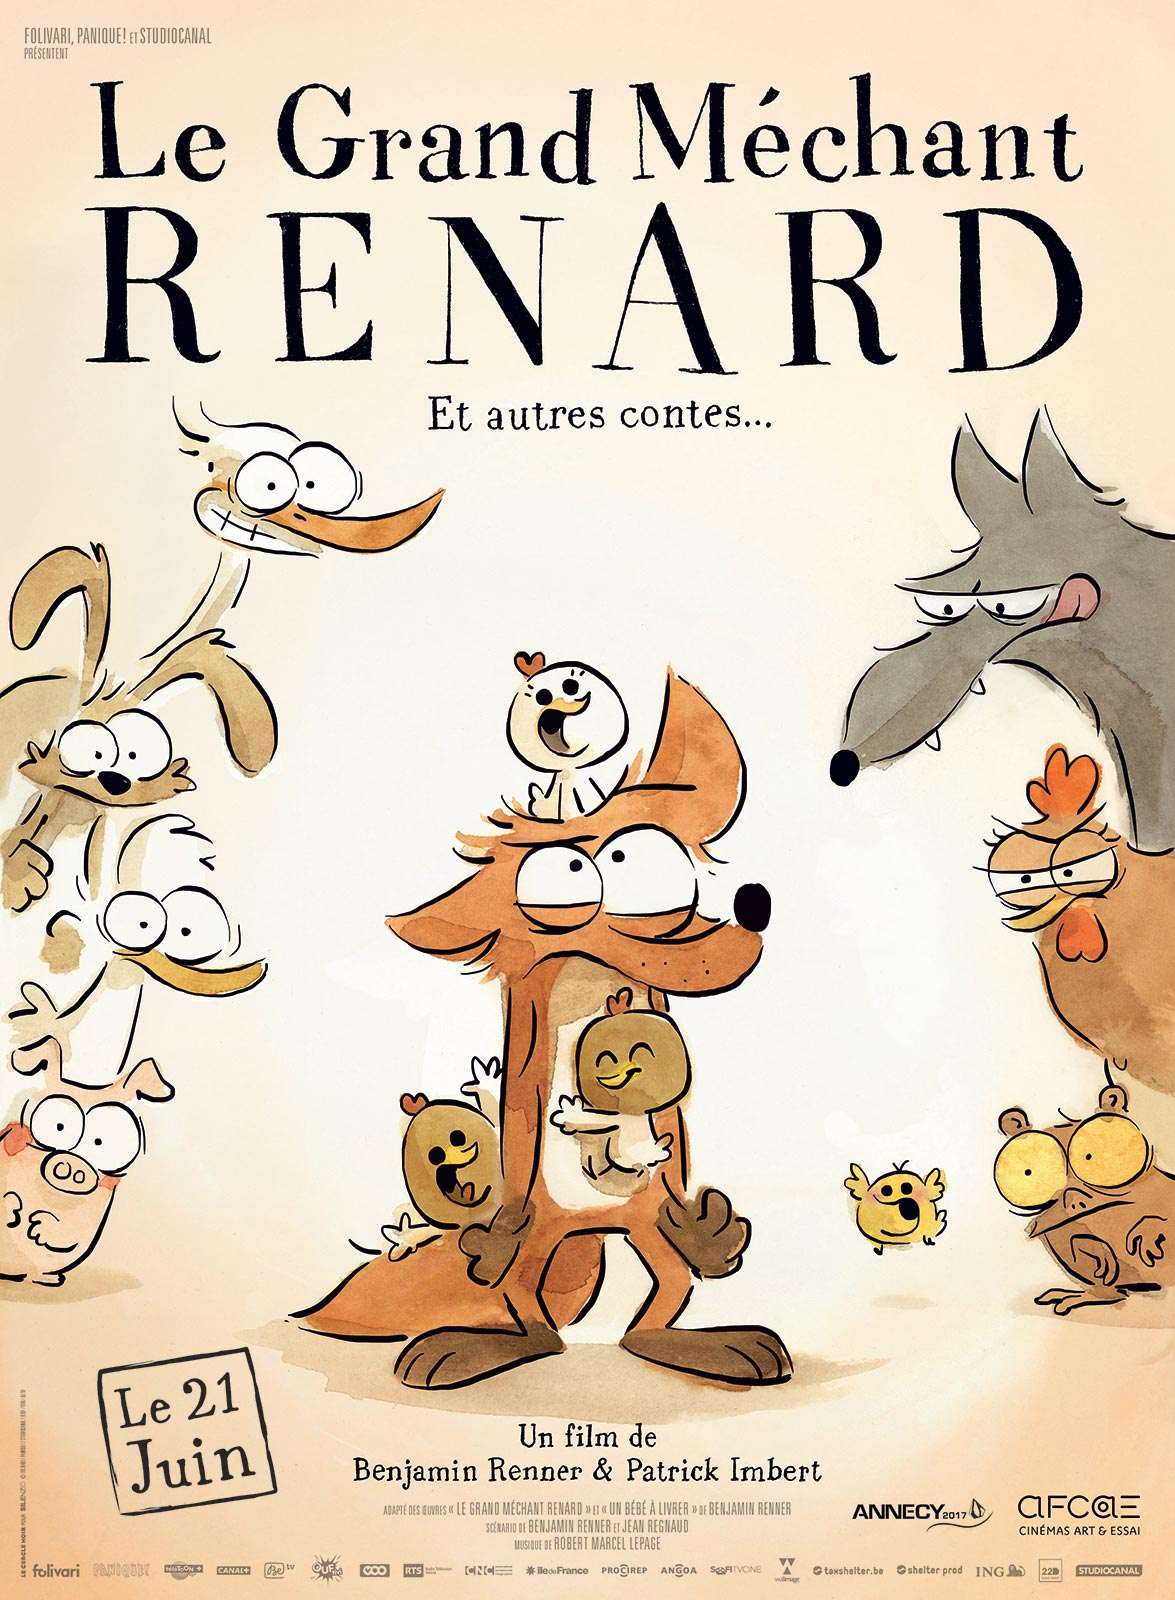 Le Grand Méchant Renard et autres contes streaming